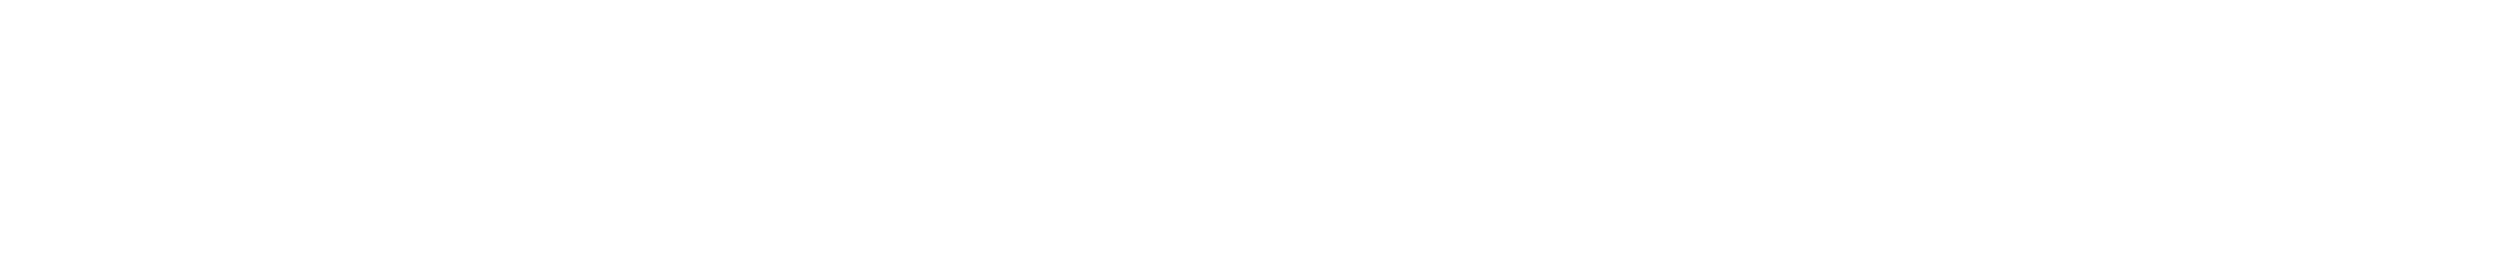 apple.wide-01.png